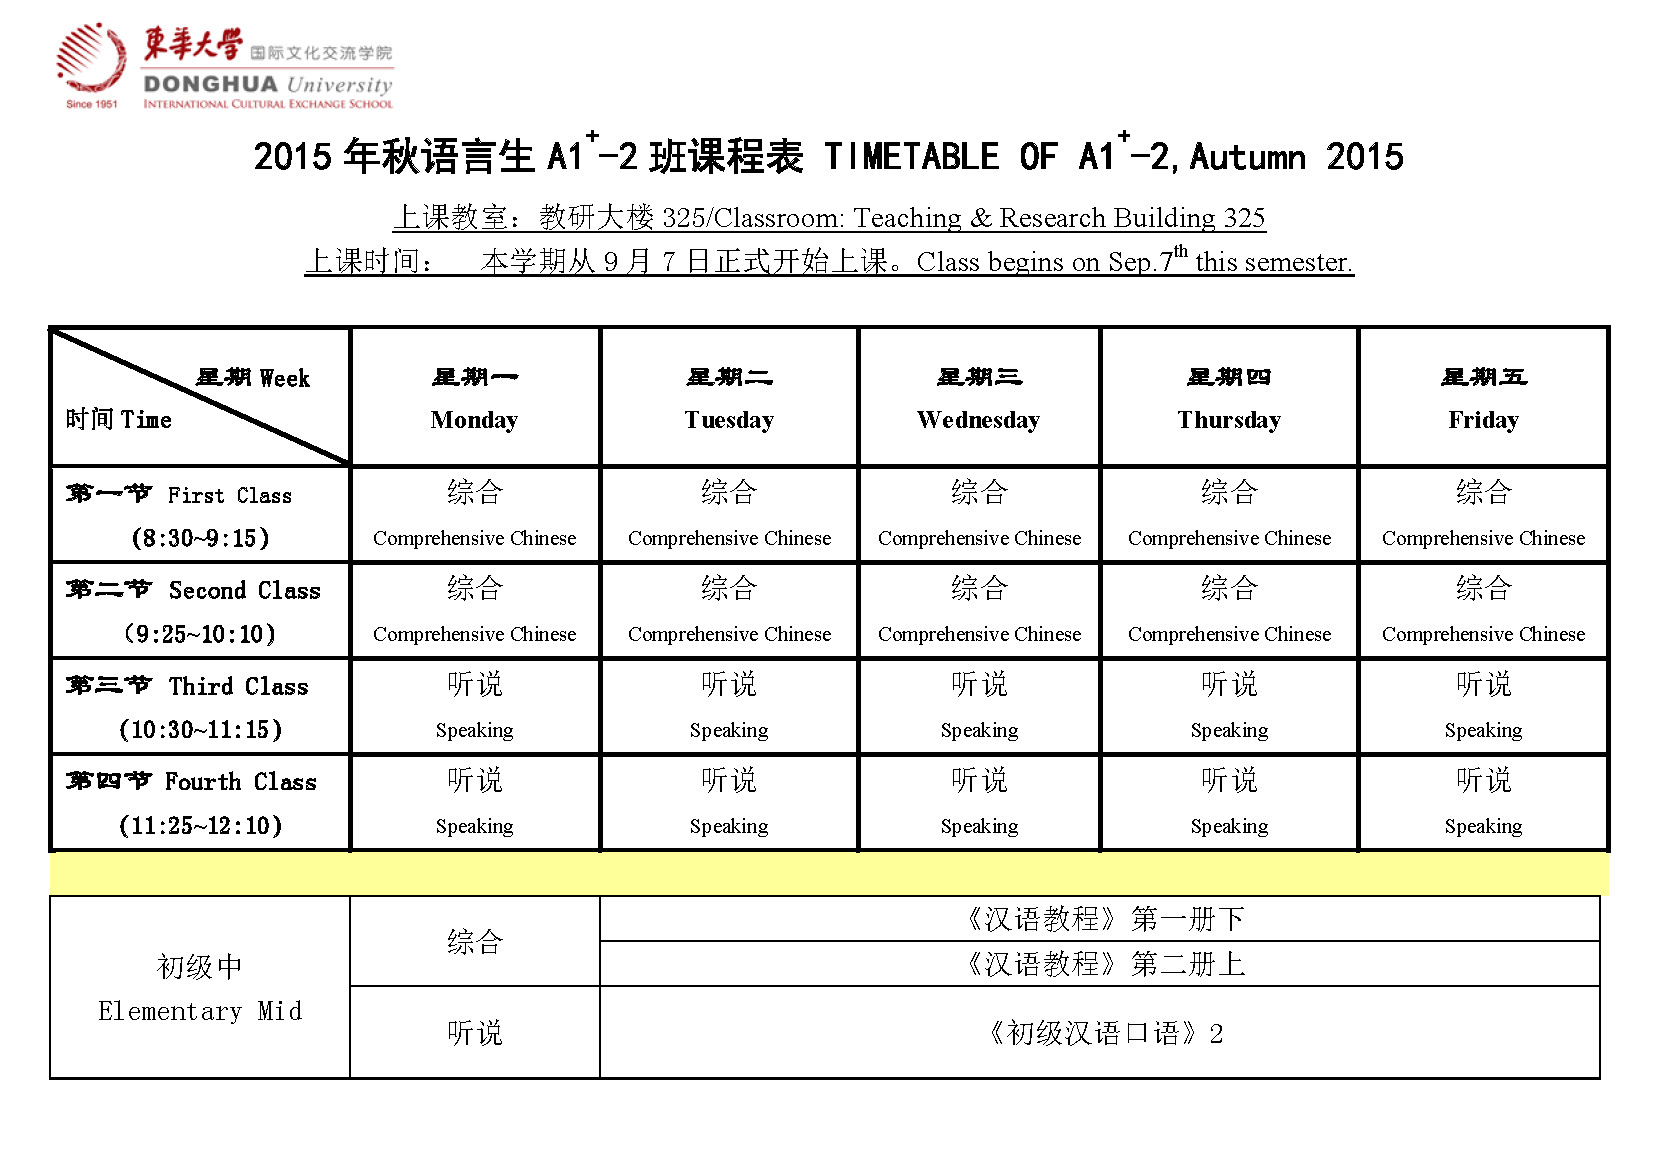 Timetables of Chinese Programs A/C/D/E/G, Autumn 2015